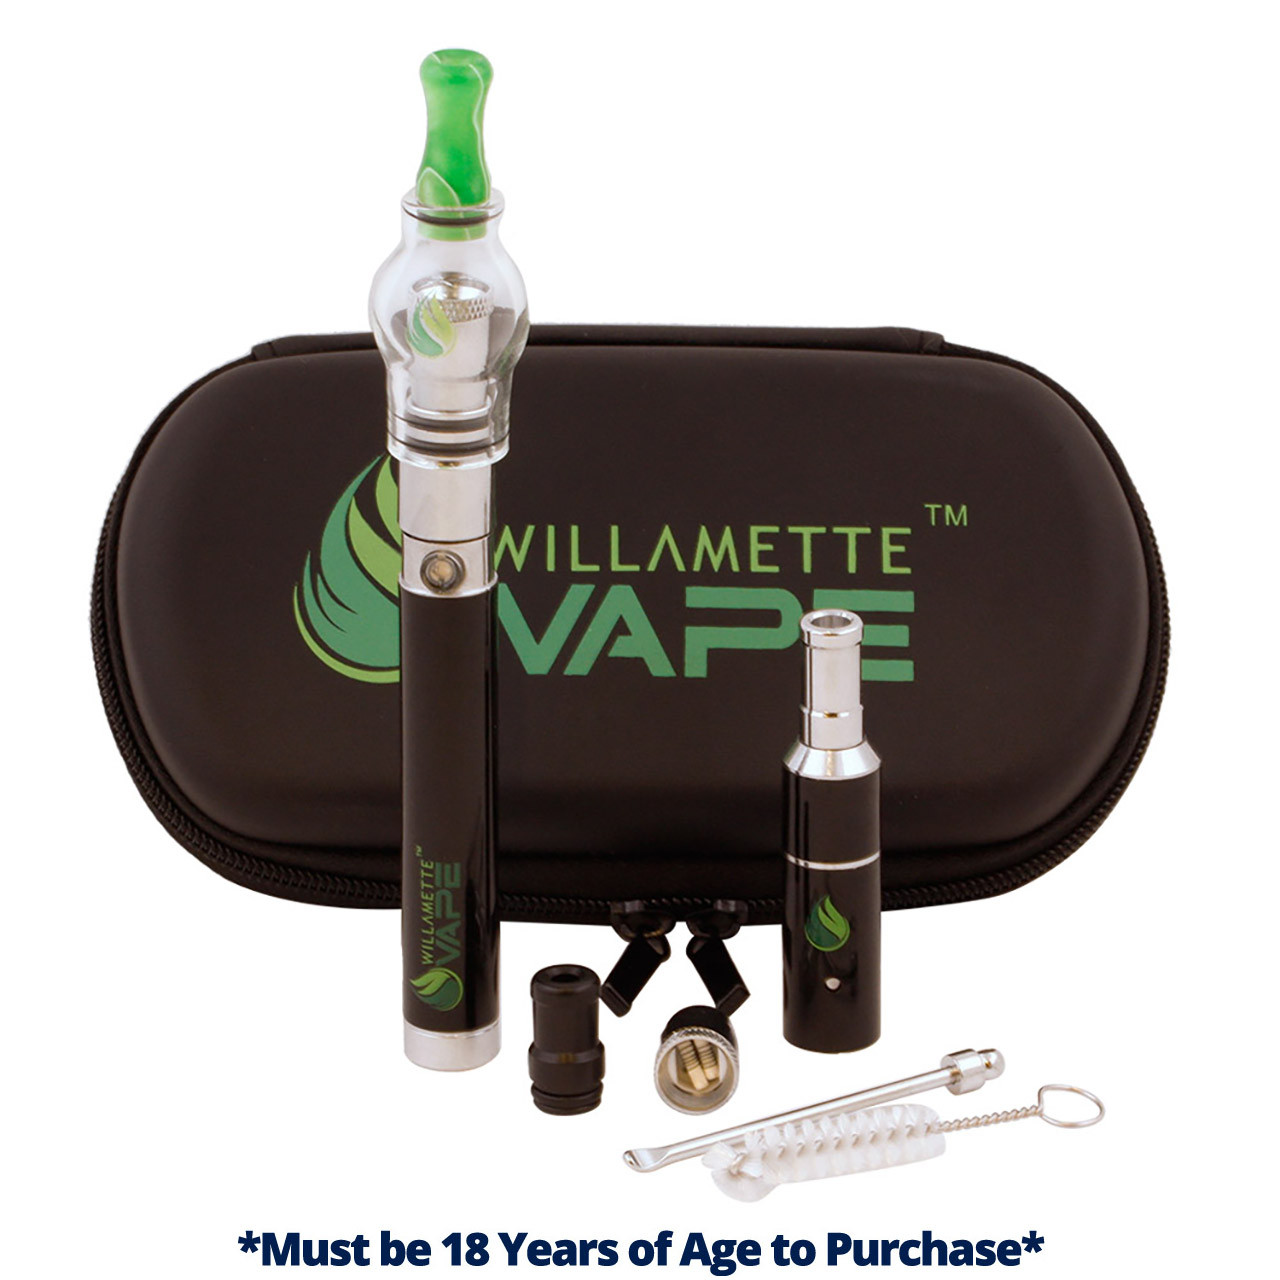 Willamette Vape Kit | Wax, Oil & Dry Herb